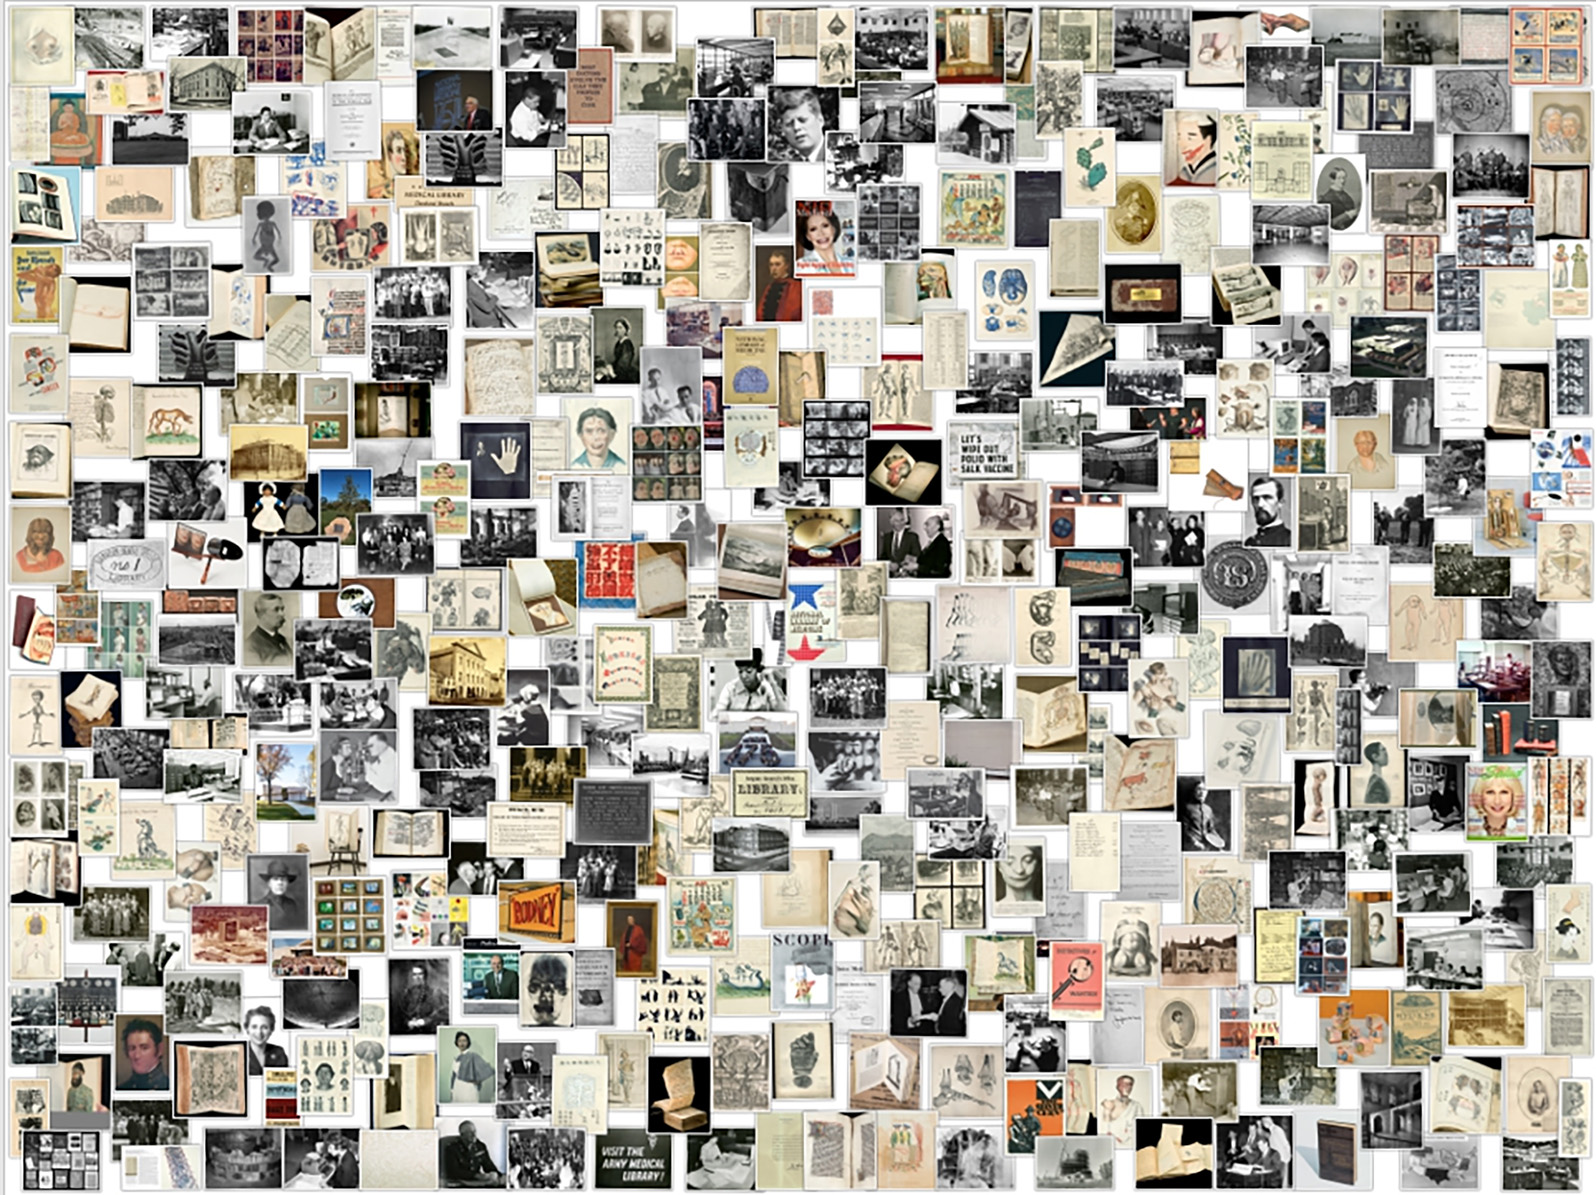 A collage showing the diversity of historical materials.